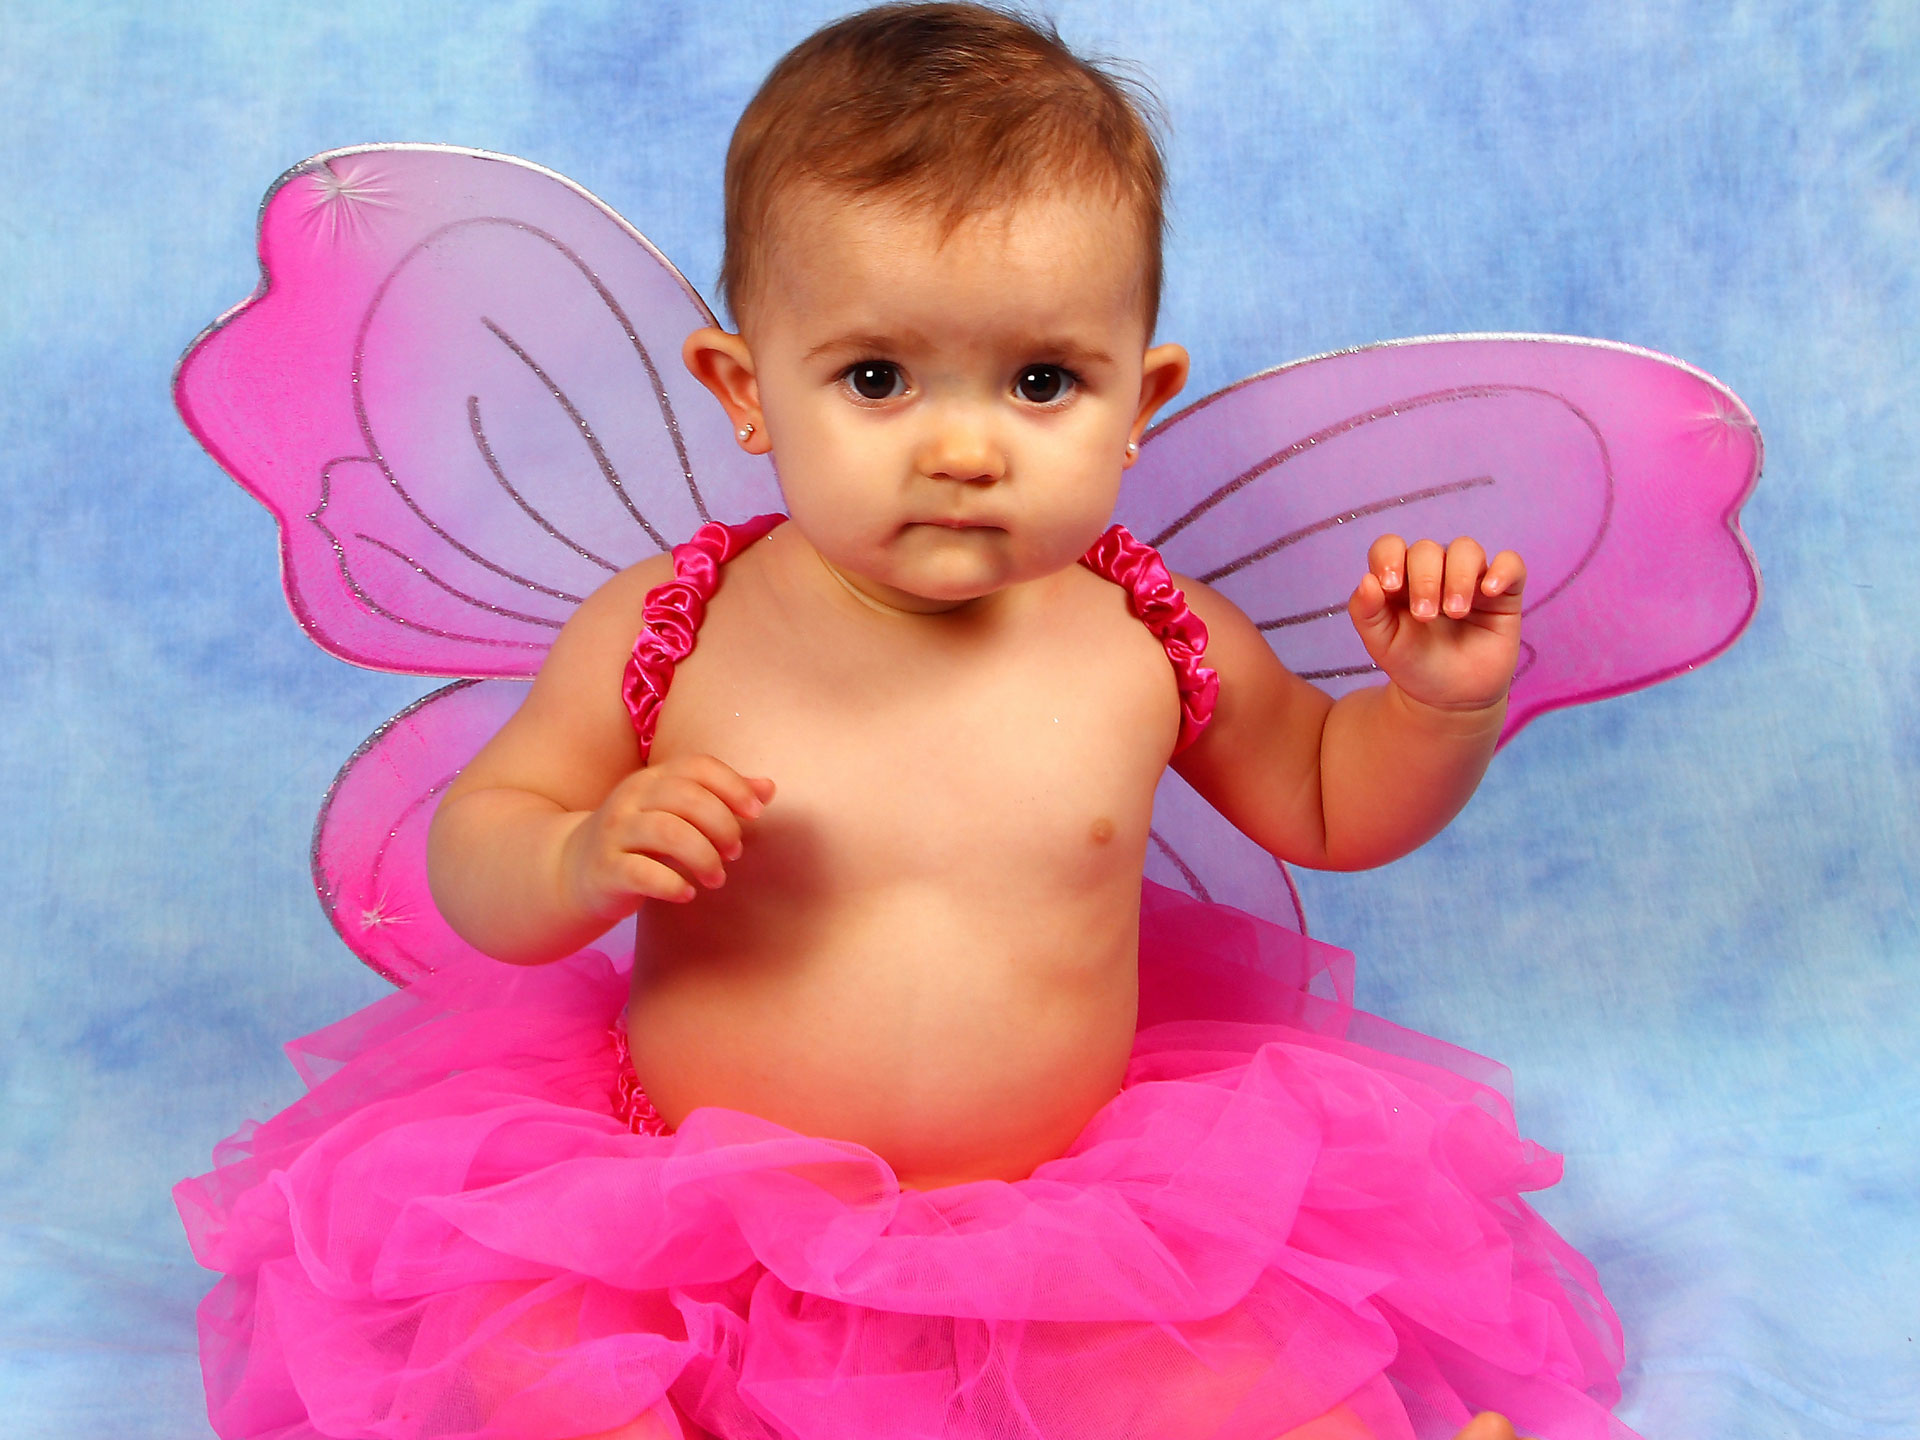 Cute Baby Girl Hd Wallpapers Images Pictures Pics And Photos Wallpaper